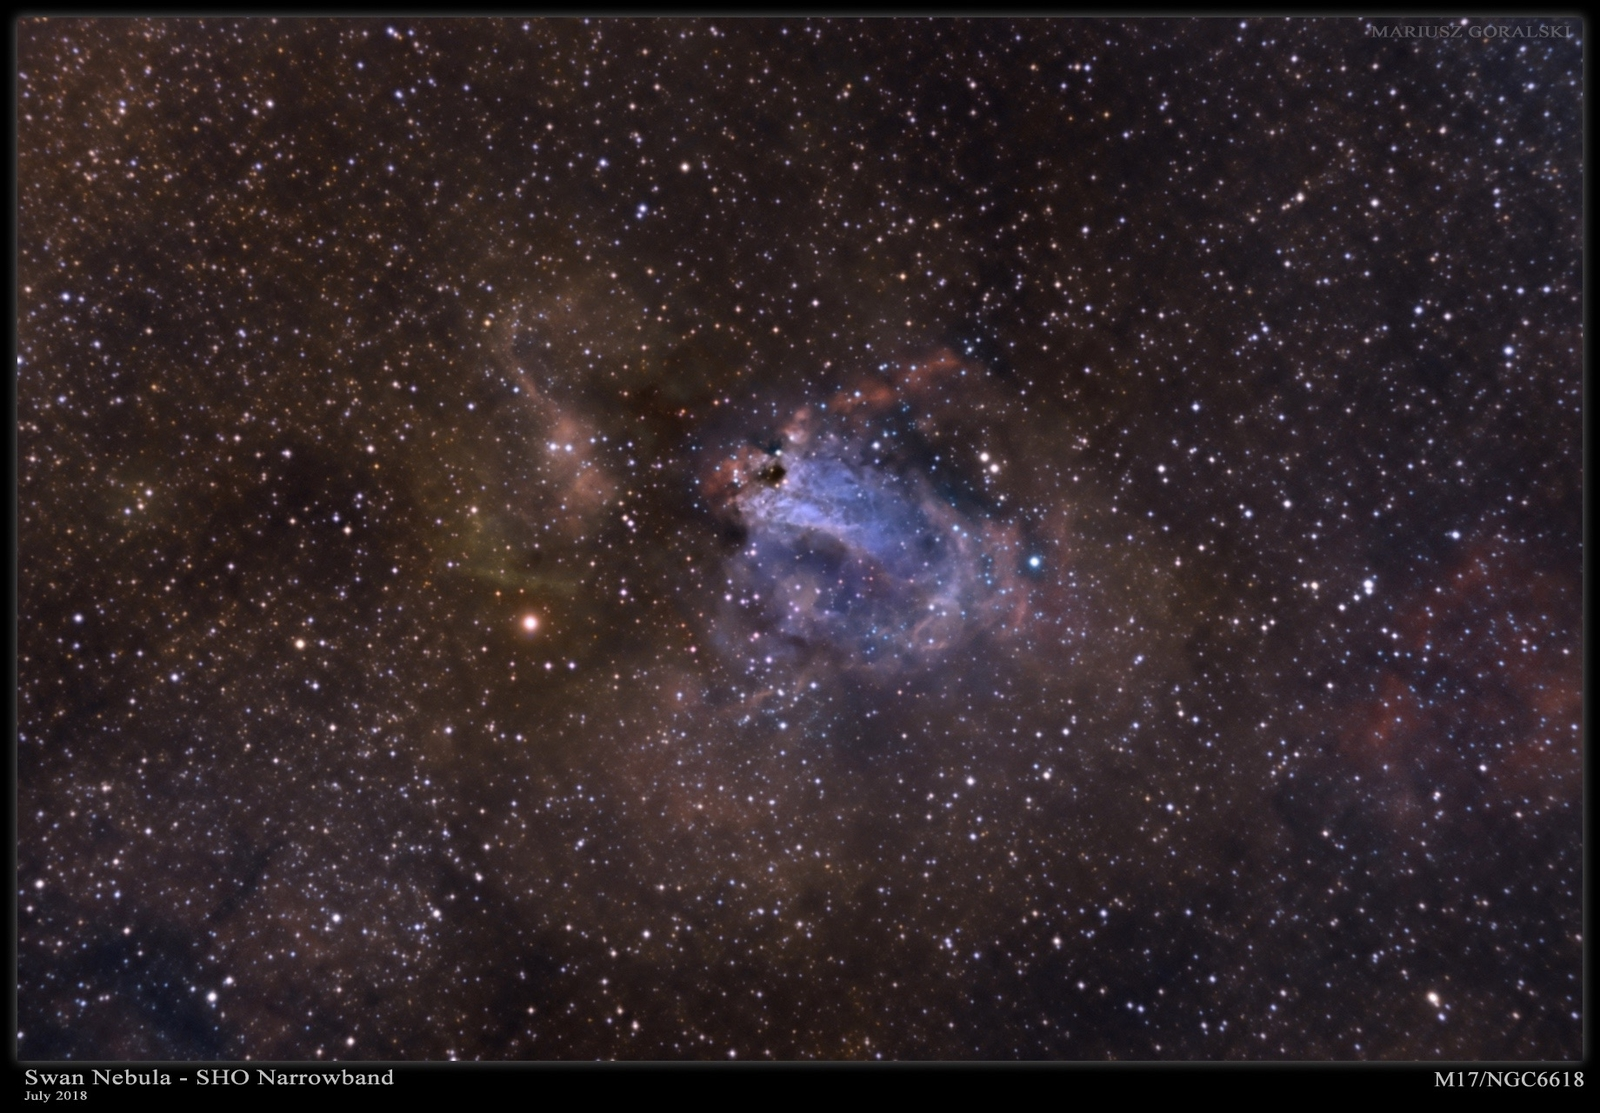 The Swan Nebula/Omega Nebula (M17) in Narrowband